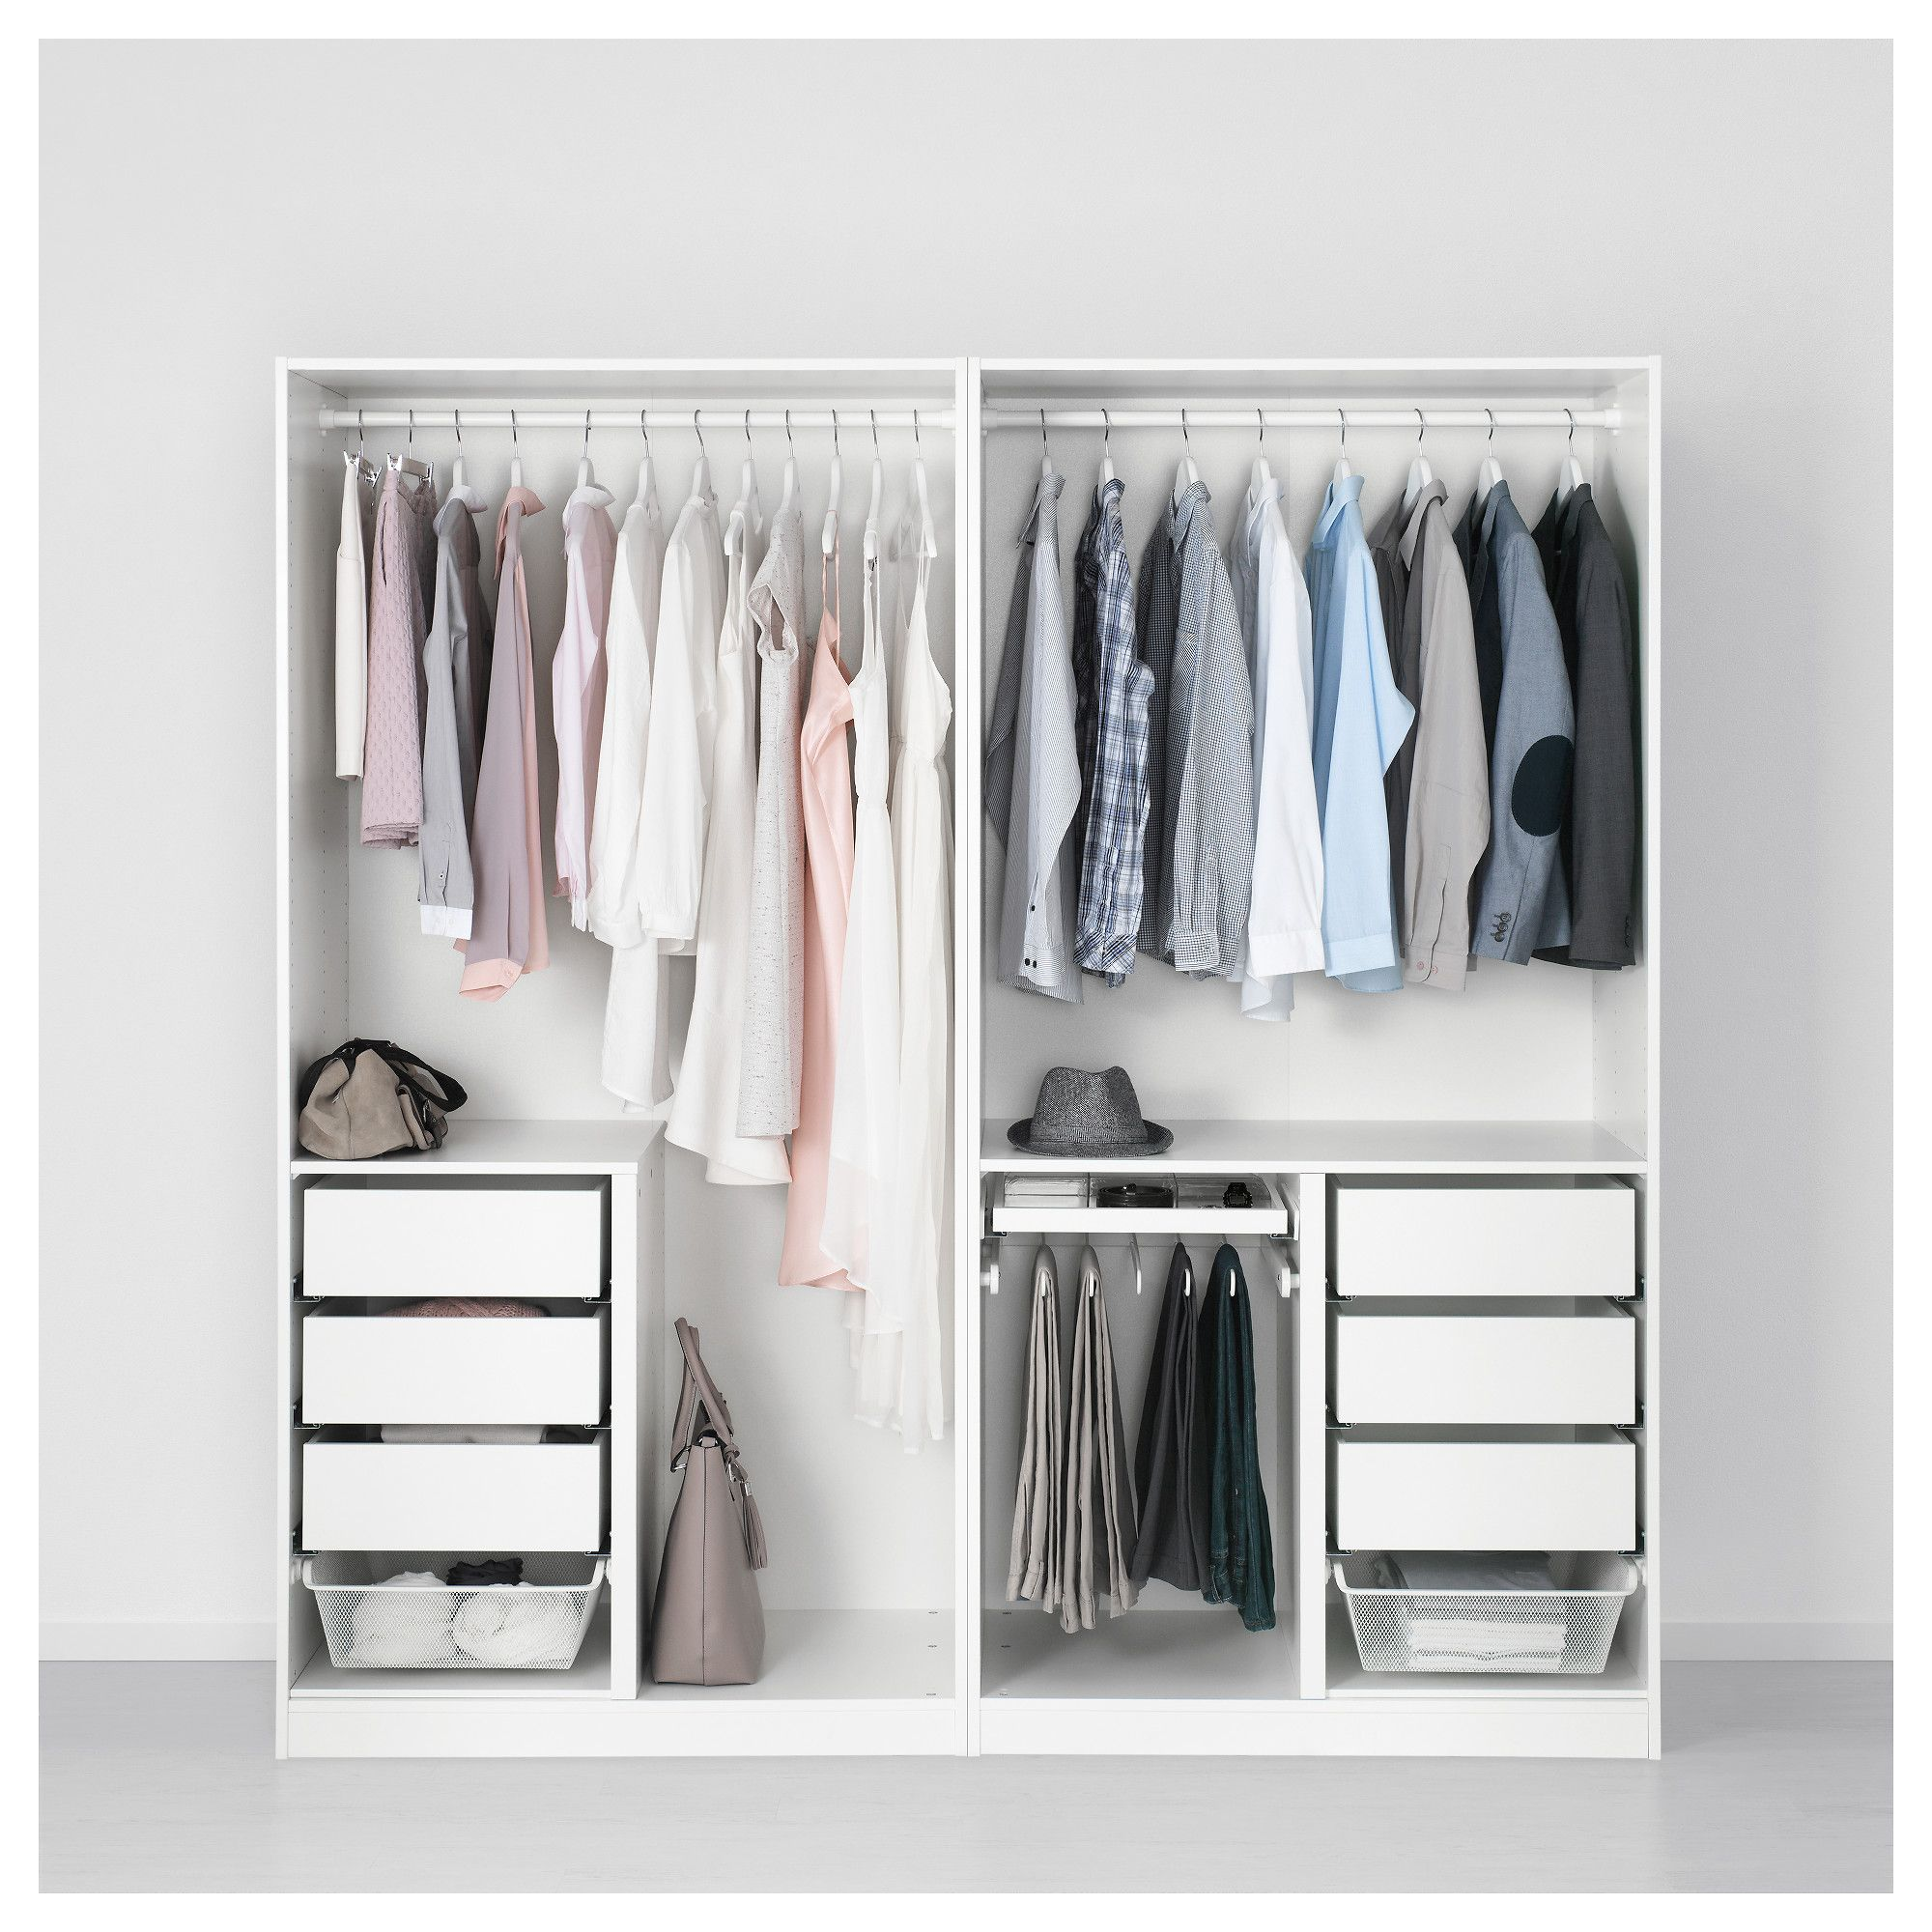 ikea pax wardrobe white forsand vikedal products in 2019 pax wardrobe ikea ikea pax. Black Bedroom Furniture Sets. Home Design Ideas